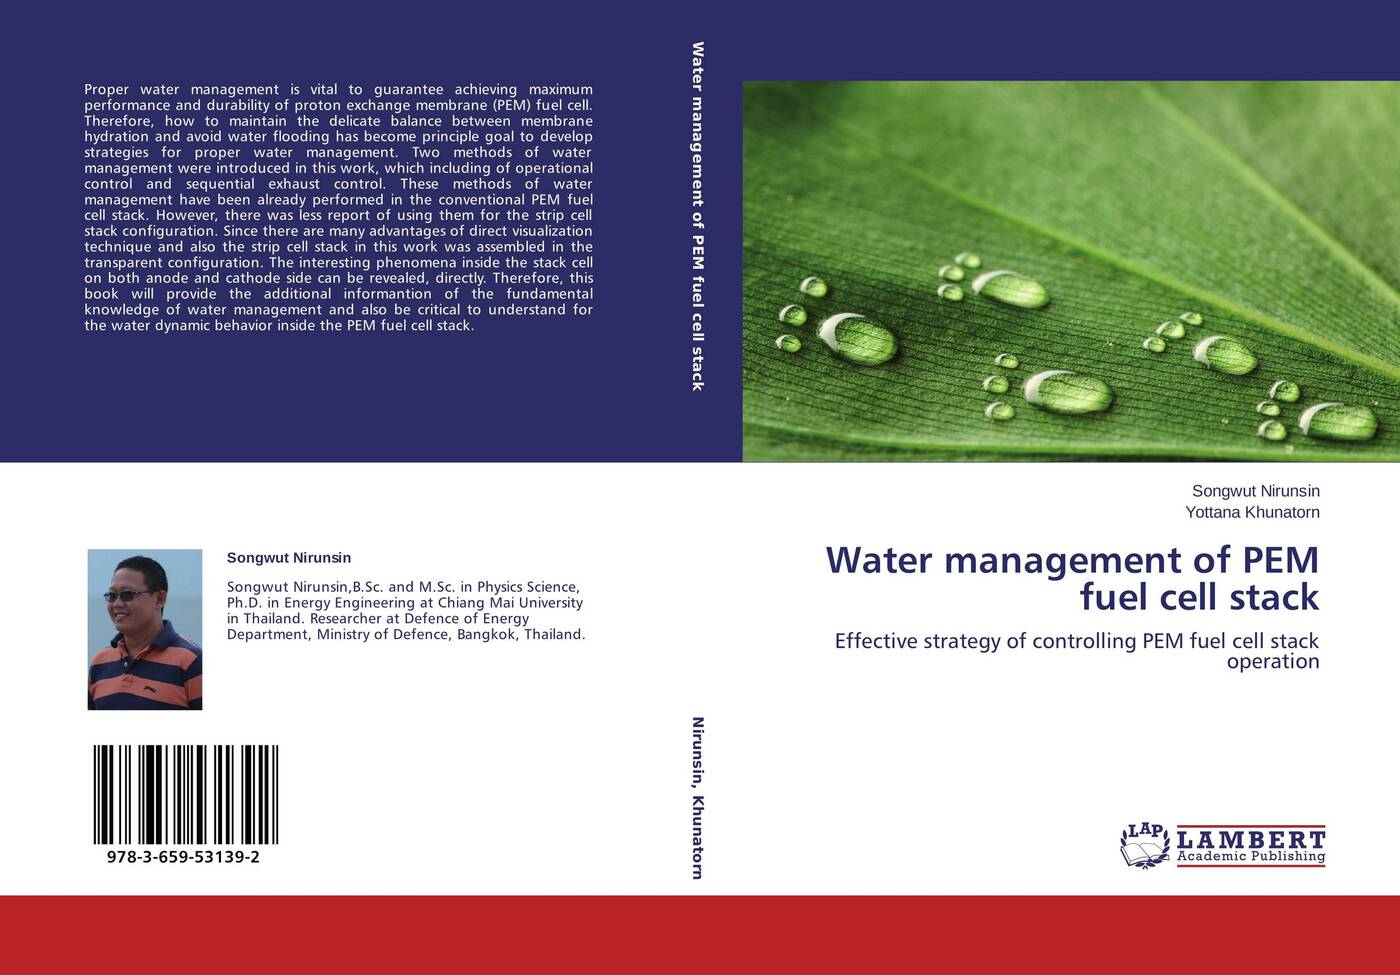 Songwut Nirunsin and Yottana Khunatorn Water management of PEM fuel cell stack pem cell electrolyzer fuel cell to generate power pem cell for experimental education